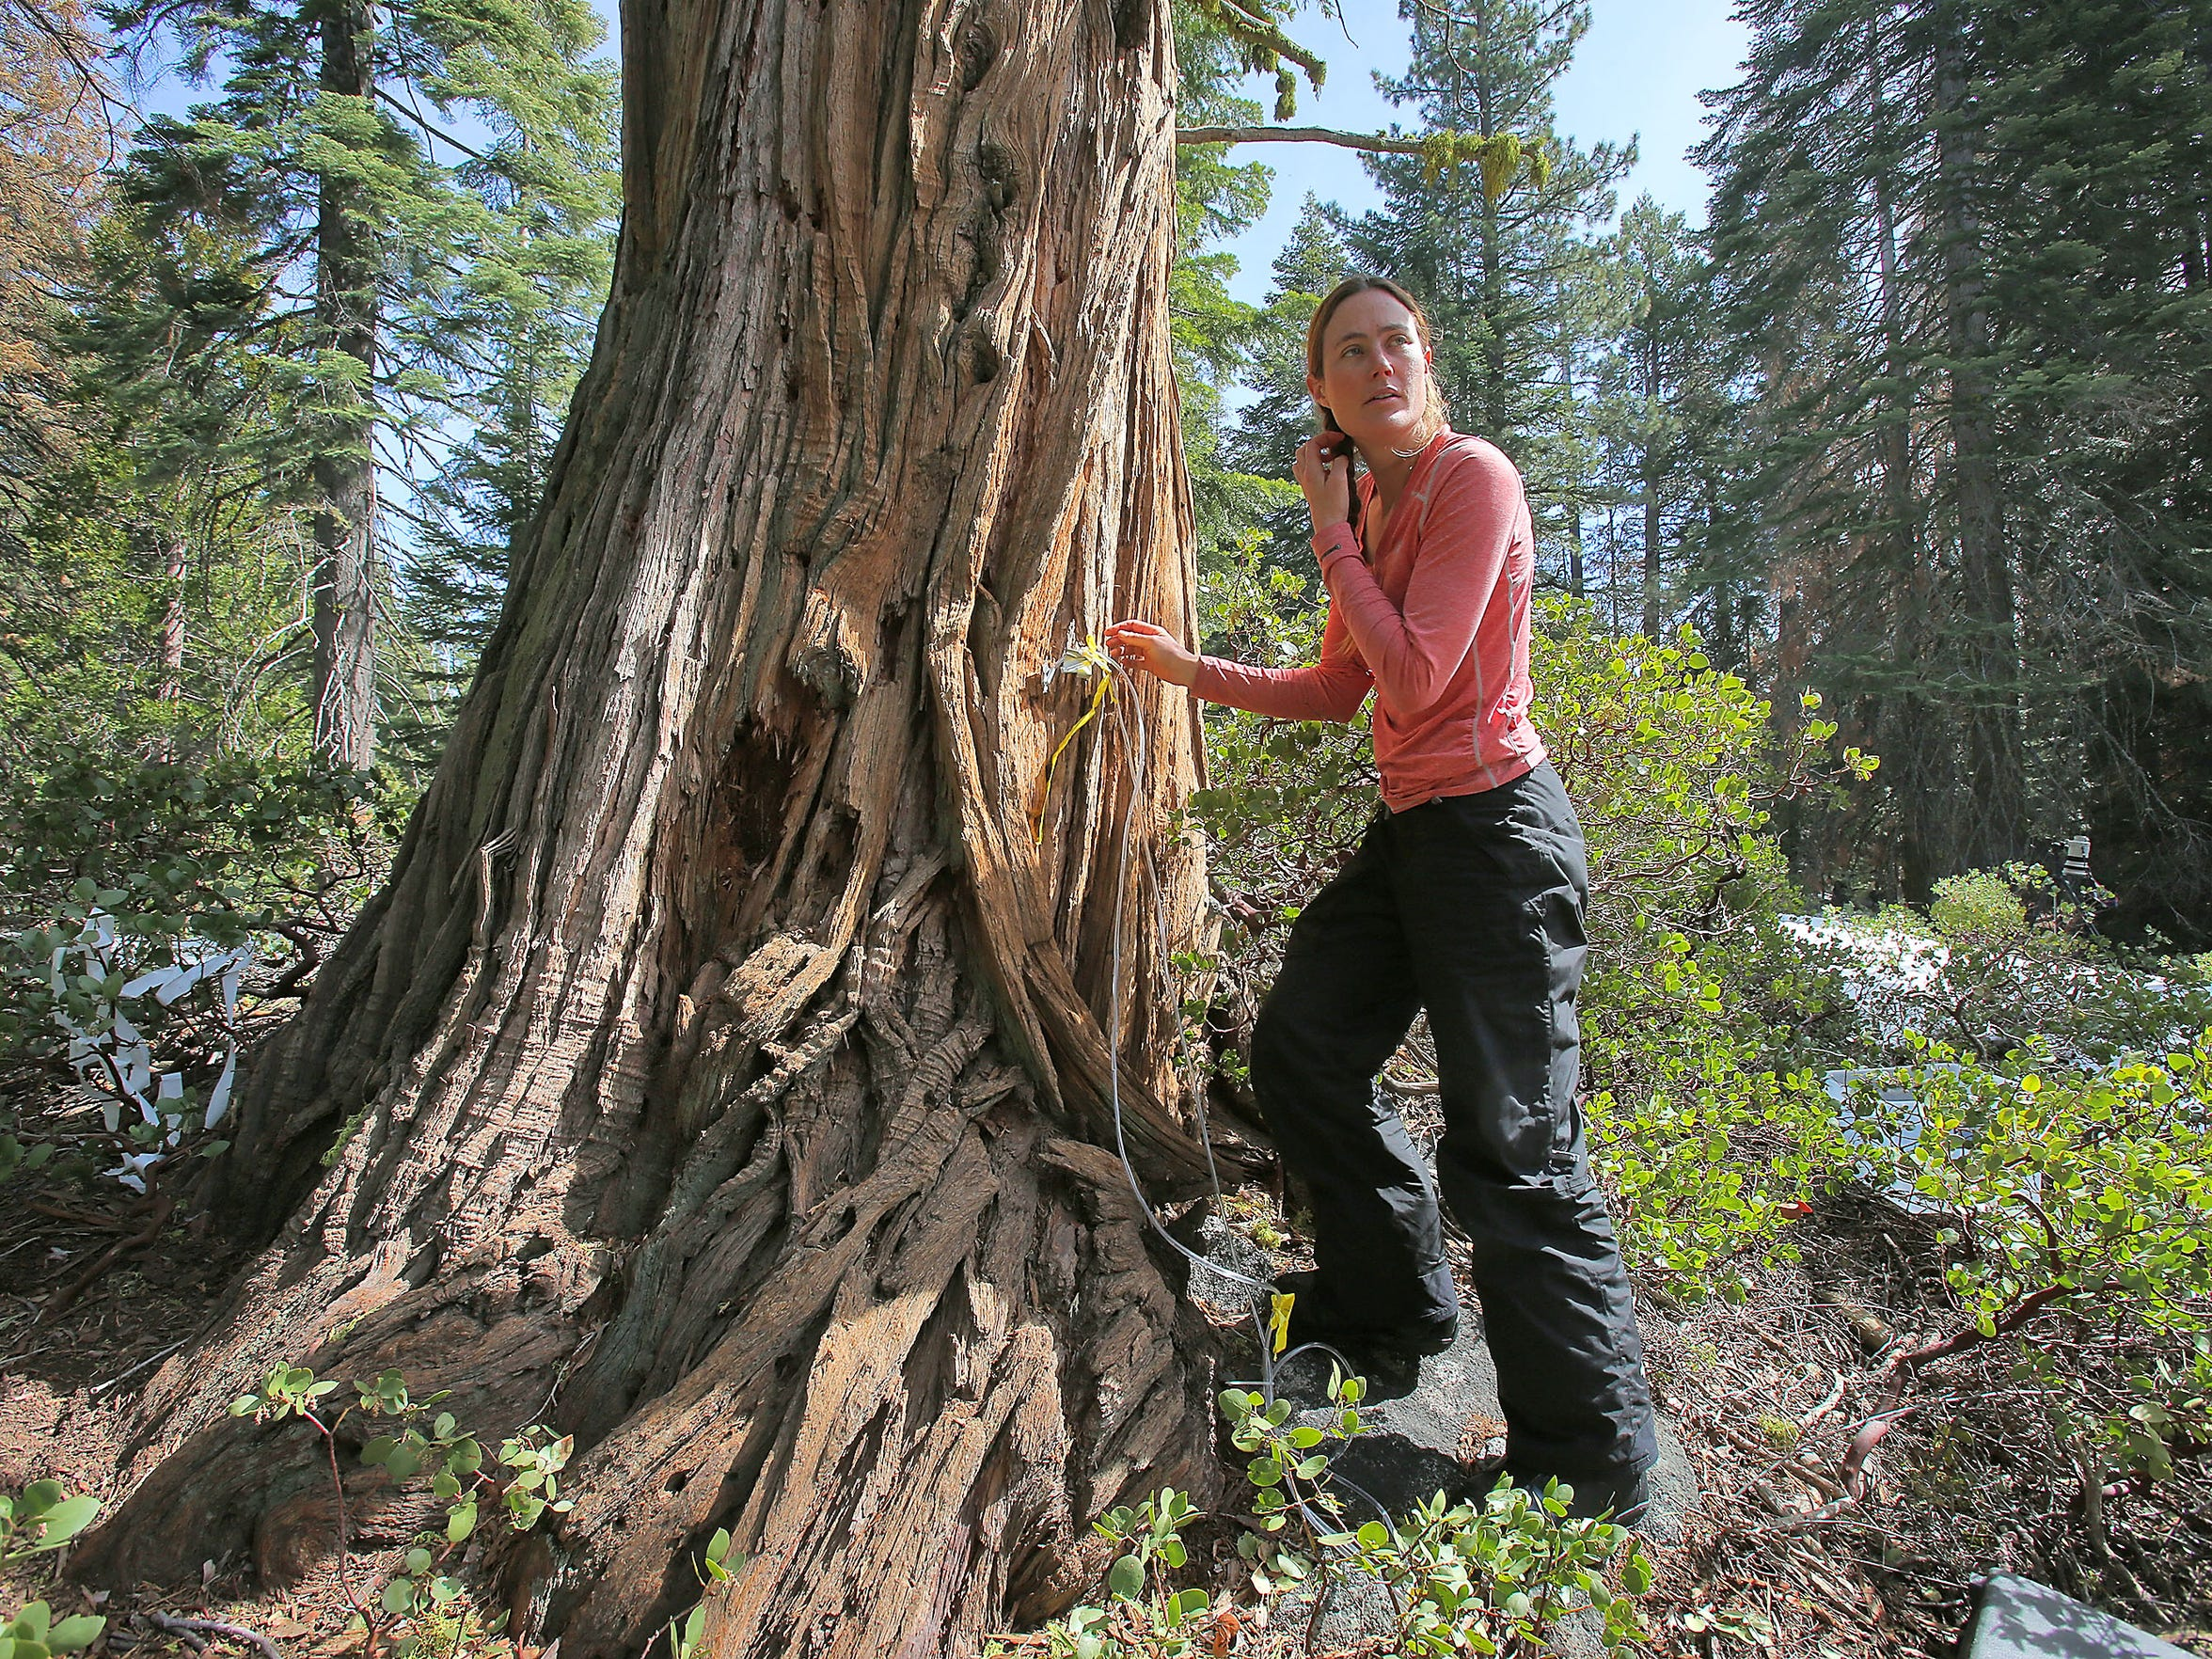 Melissa Thaw, a doctoral student at the University of California, Merced, is studying how water moves through the soil and where trees and shrubs are taking up water in the Sierra National Forest. She is focusing on the transition zone between rainfall and snow, which will be pushed higher into the mountains as the climate warms.